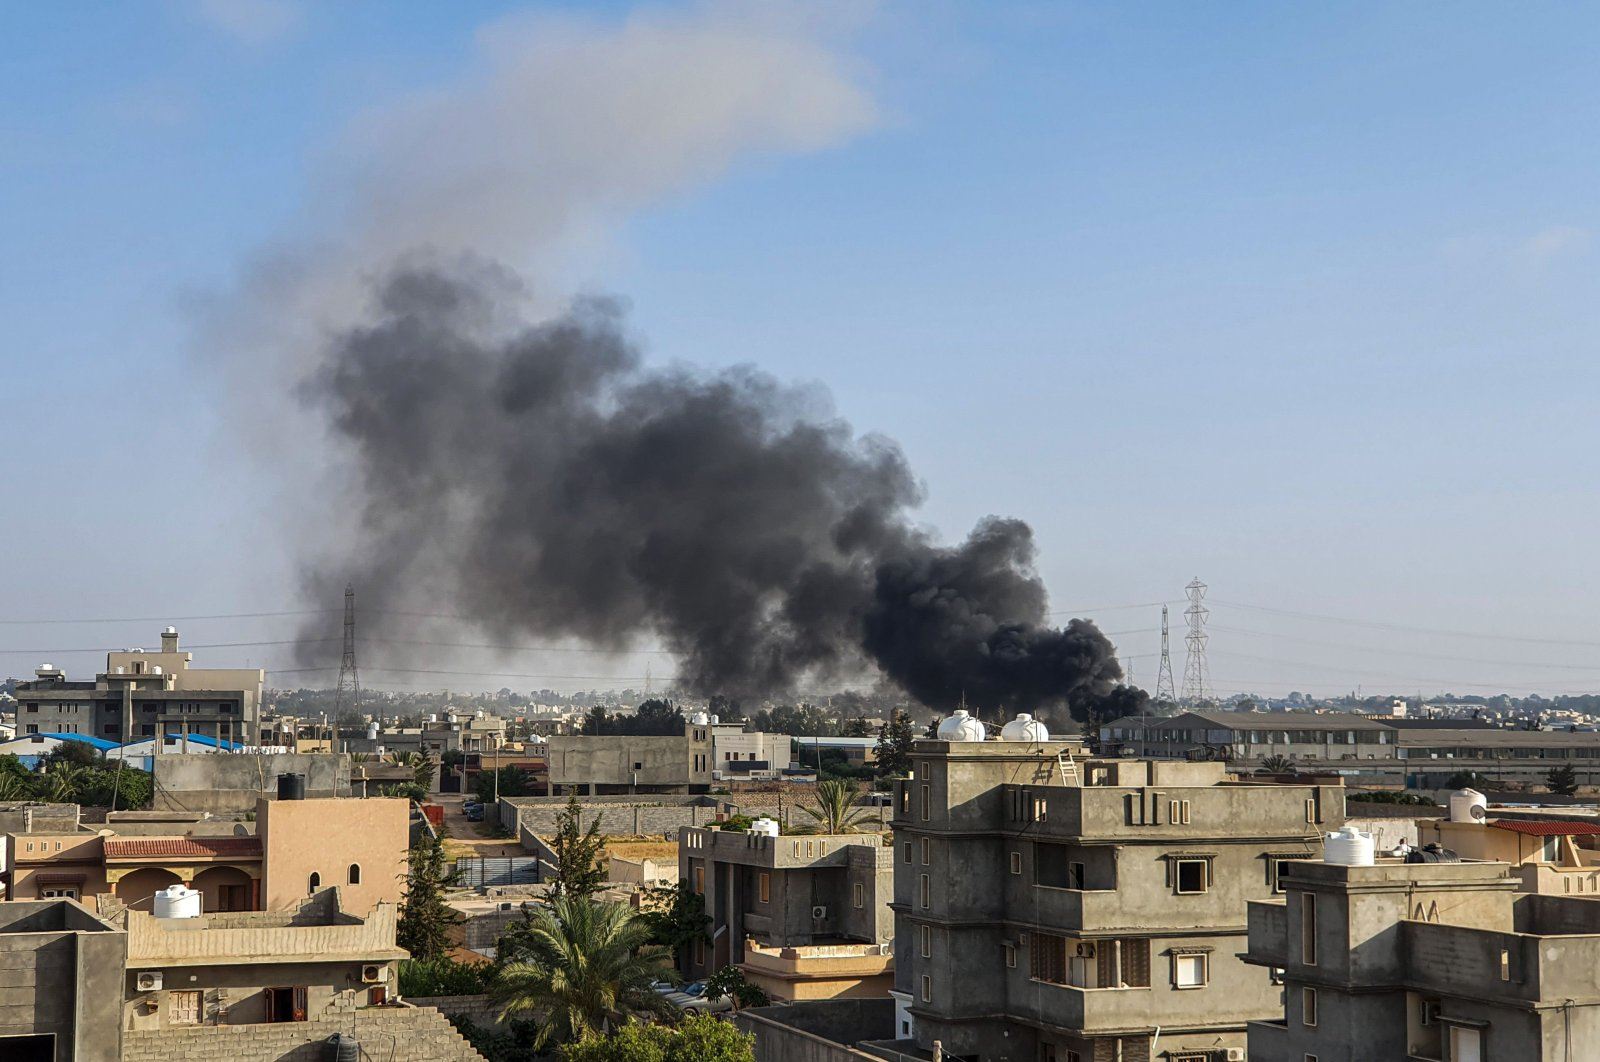 This picture taken on June 29, 2019, shows smoke plumes rising in Tajoura, south of the Libyan capital Tripoli, following a reported airstrike by forces loyal to putschist Gen. Khalifa Haftar. (AFP Photo)